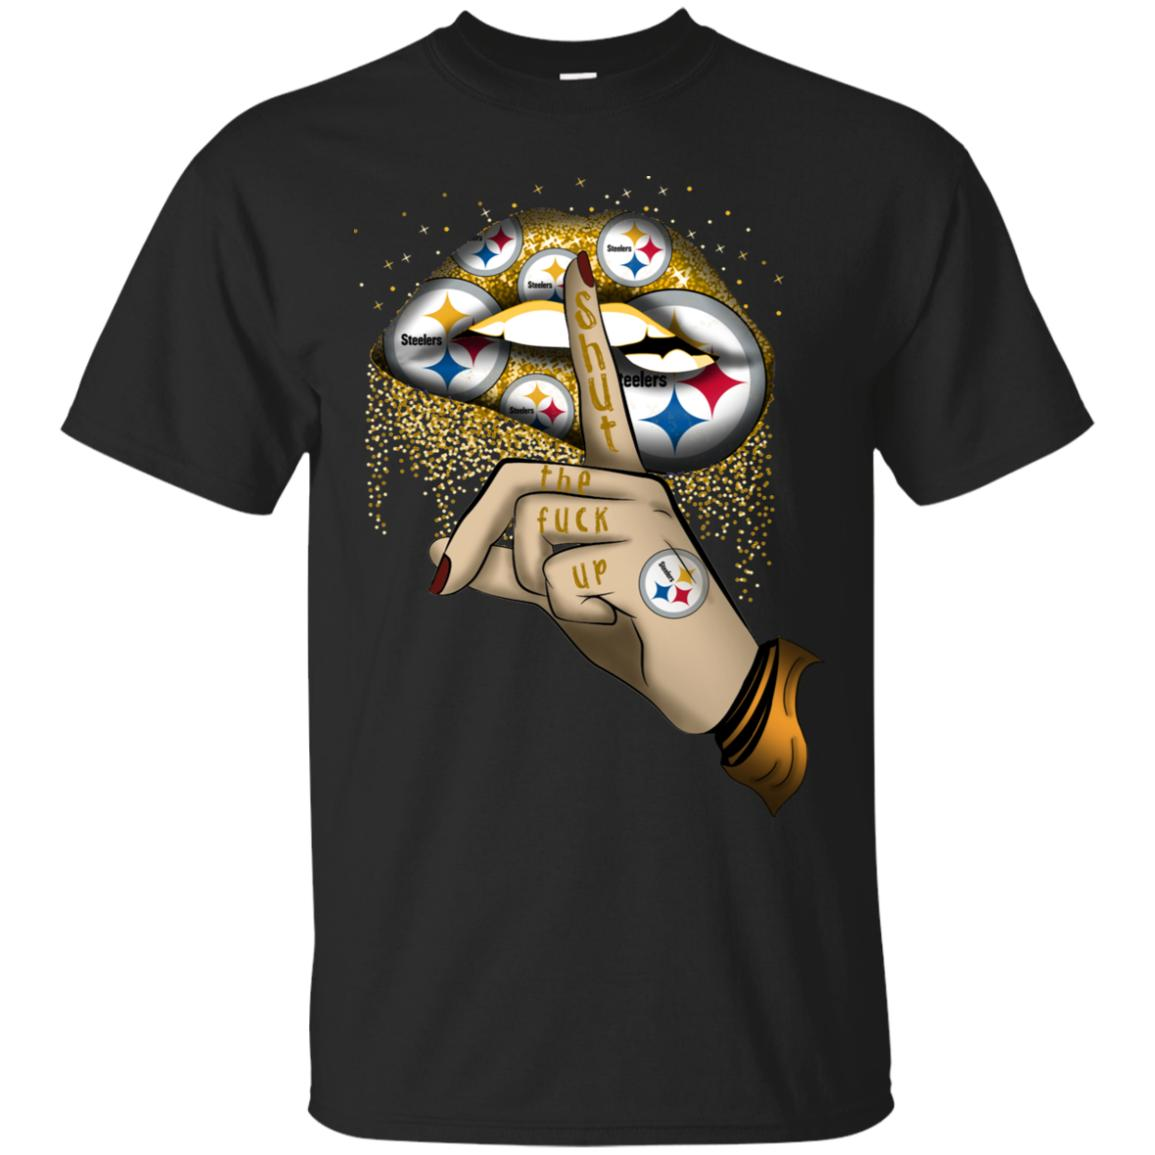 Steelers lips – Shut the fuck up T-Shirt